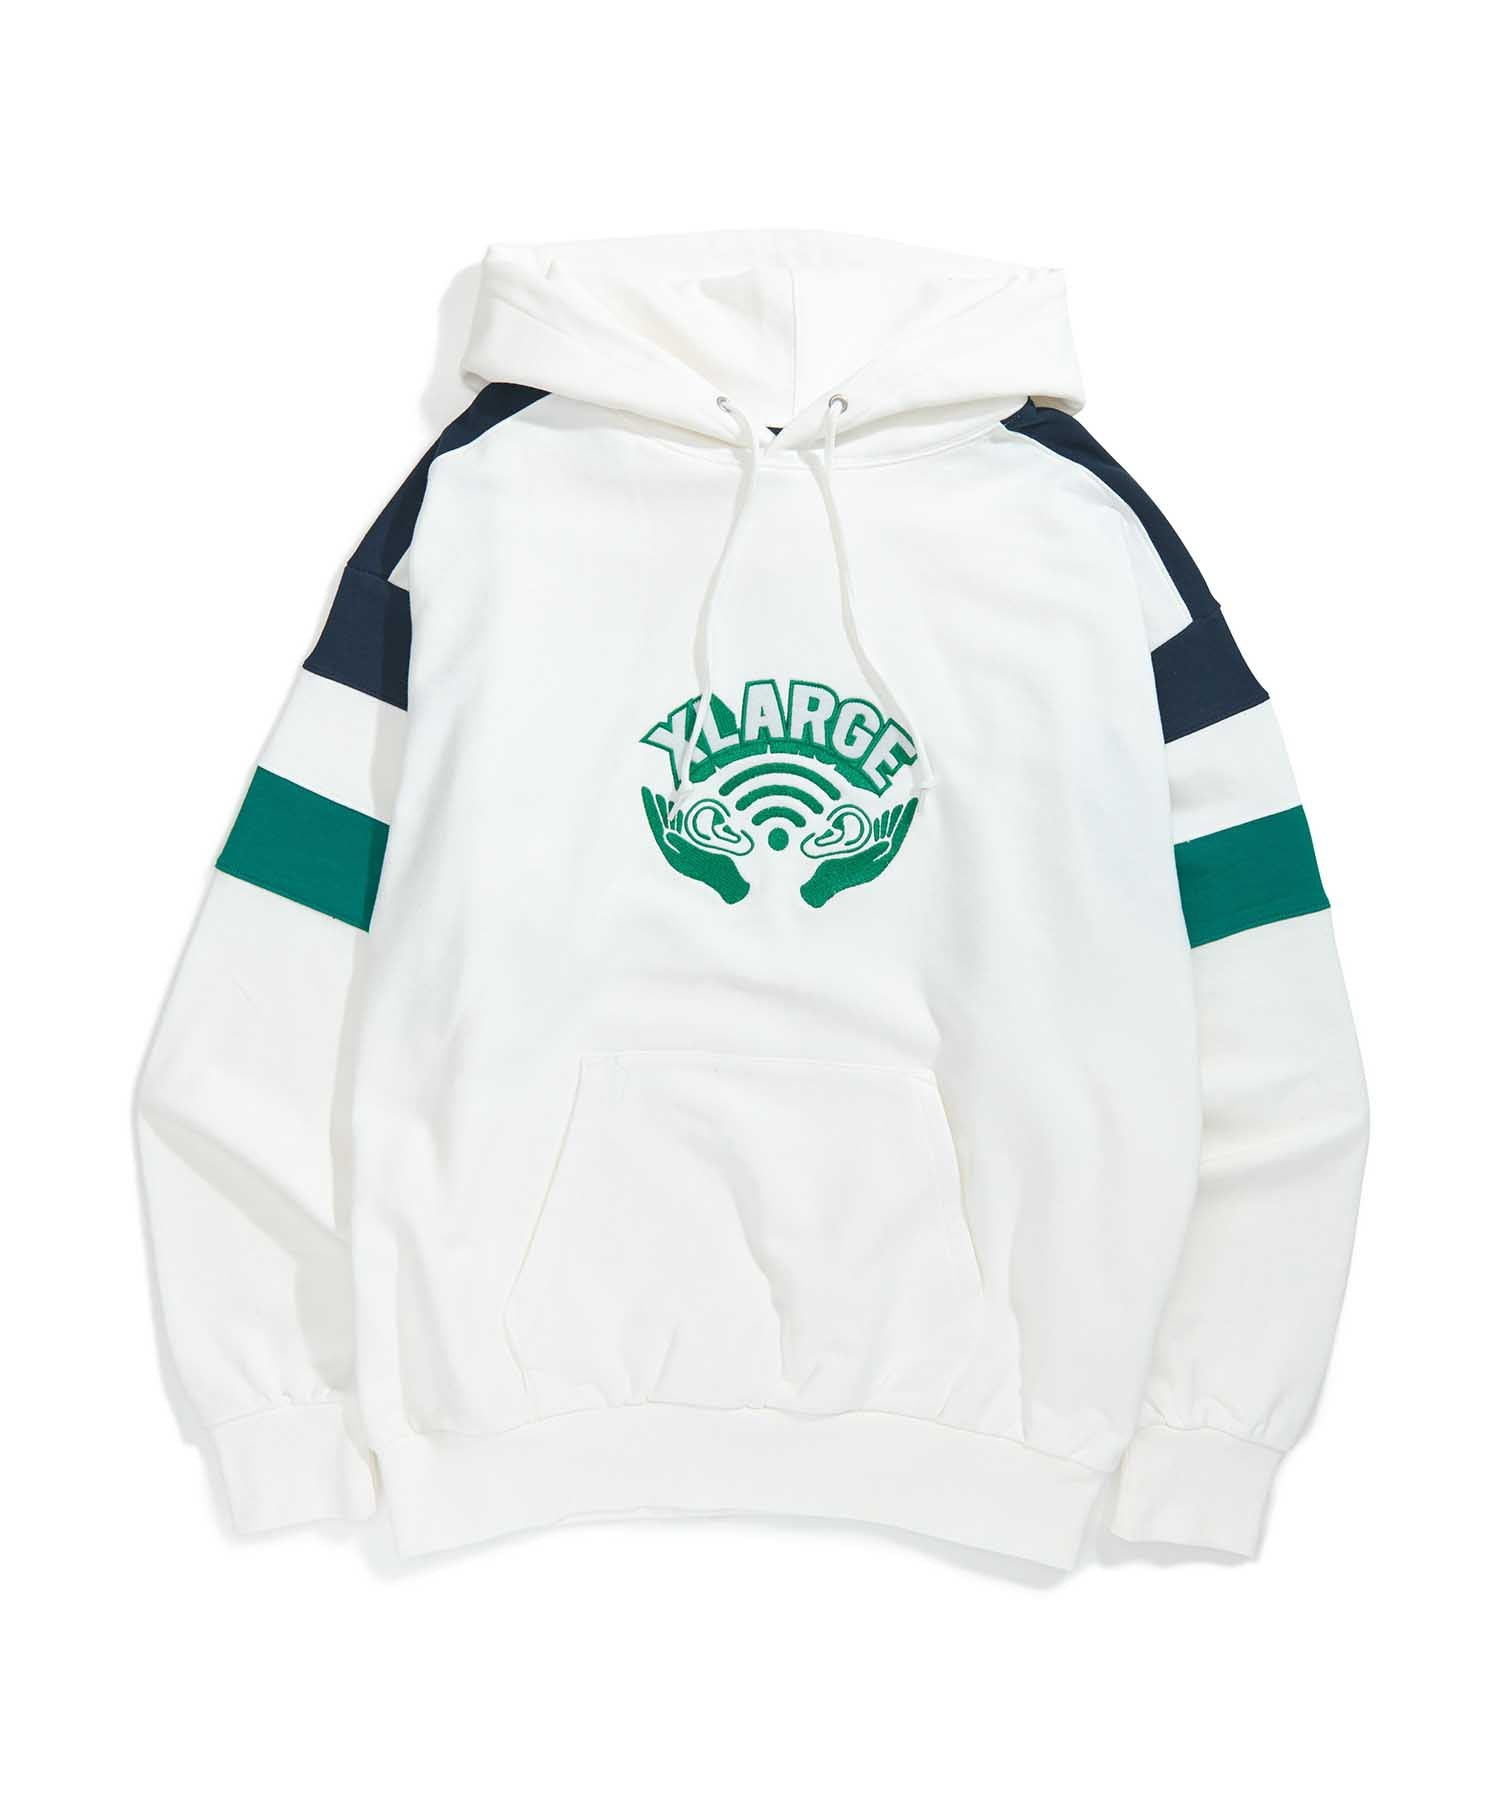 EAR WI-FI PULLOVER HOODED SWEAT FLEECE, CREWNECK, HOODIE XLARGE